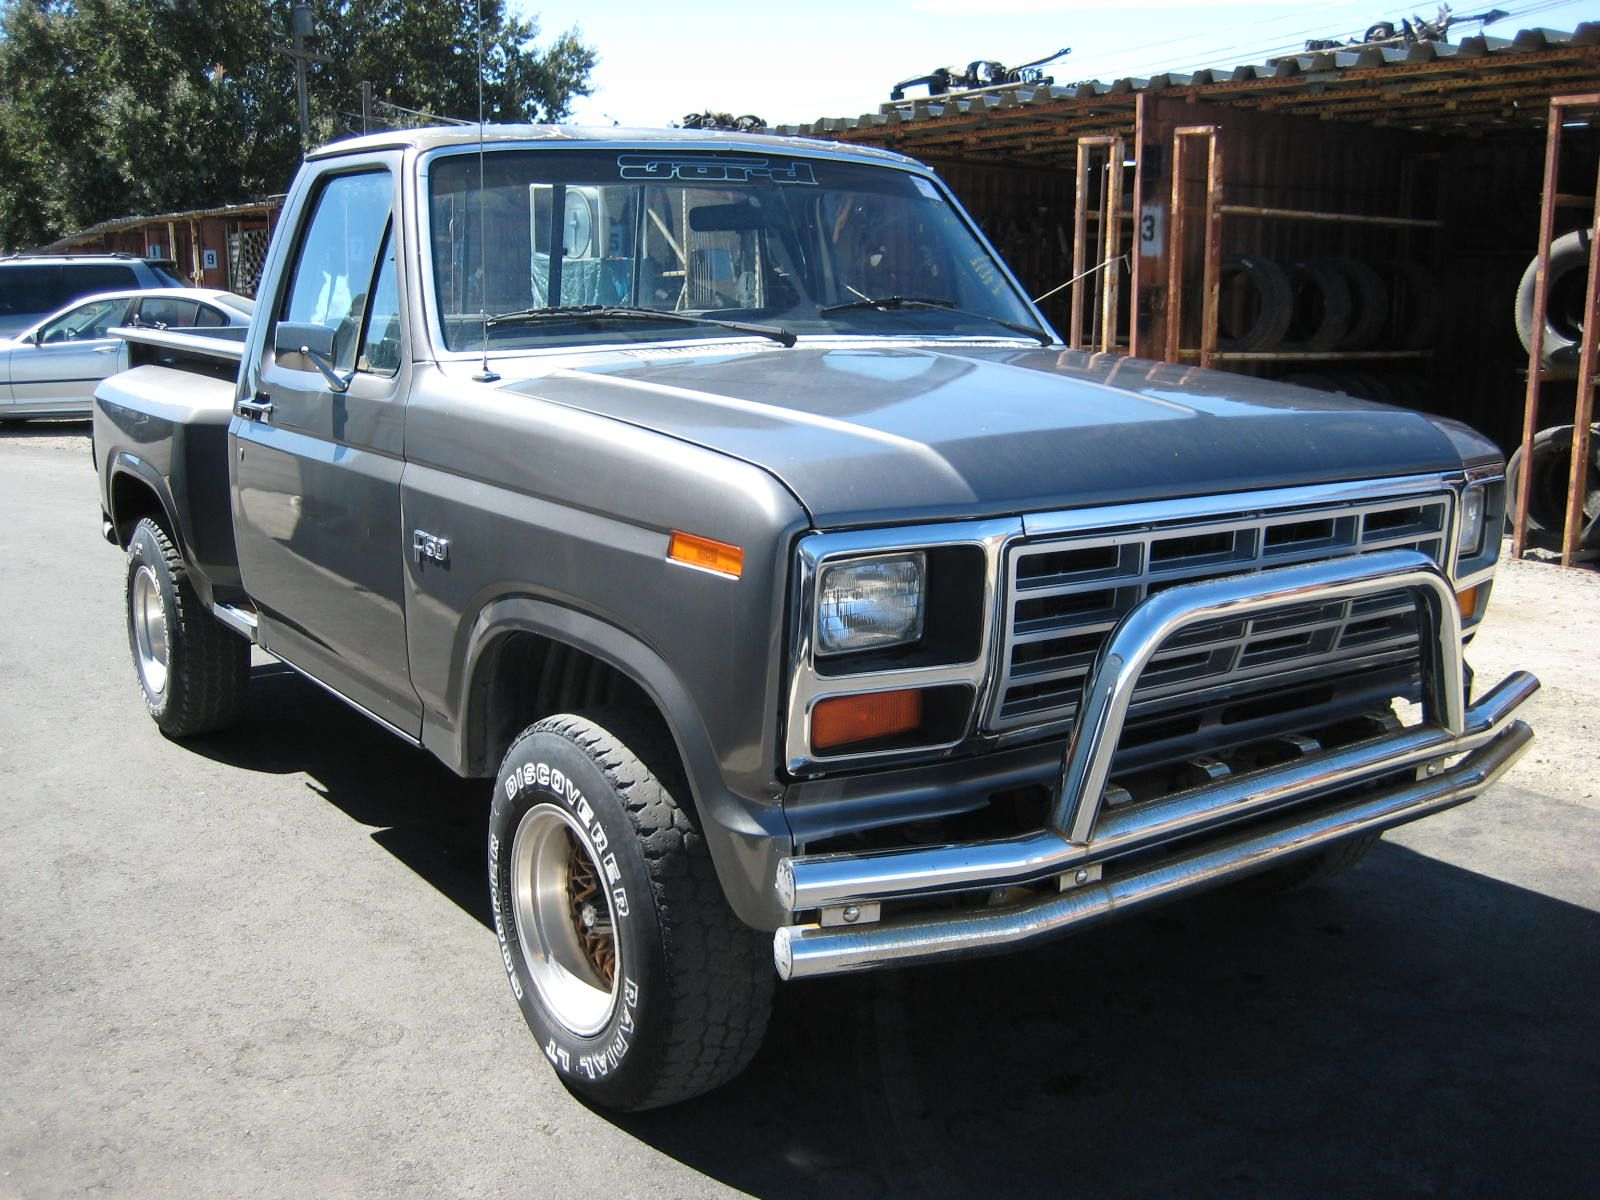 Ford Reviews : 1984 Ford F-150 Review